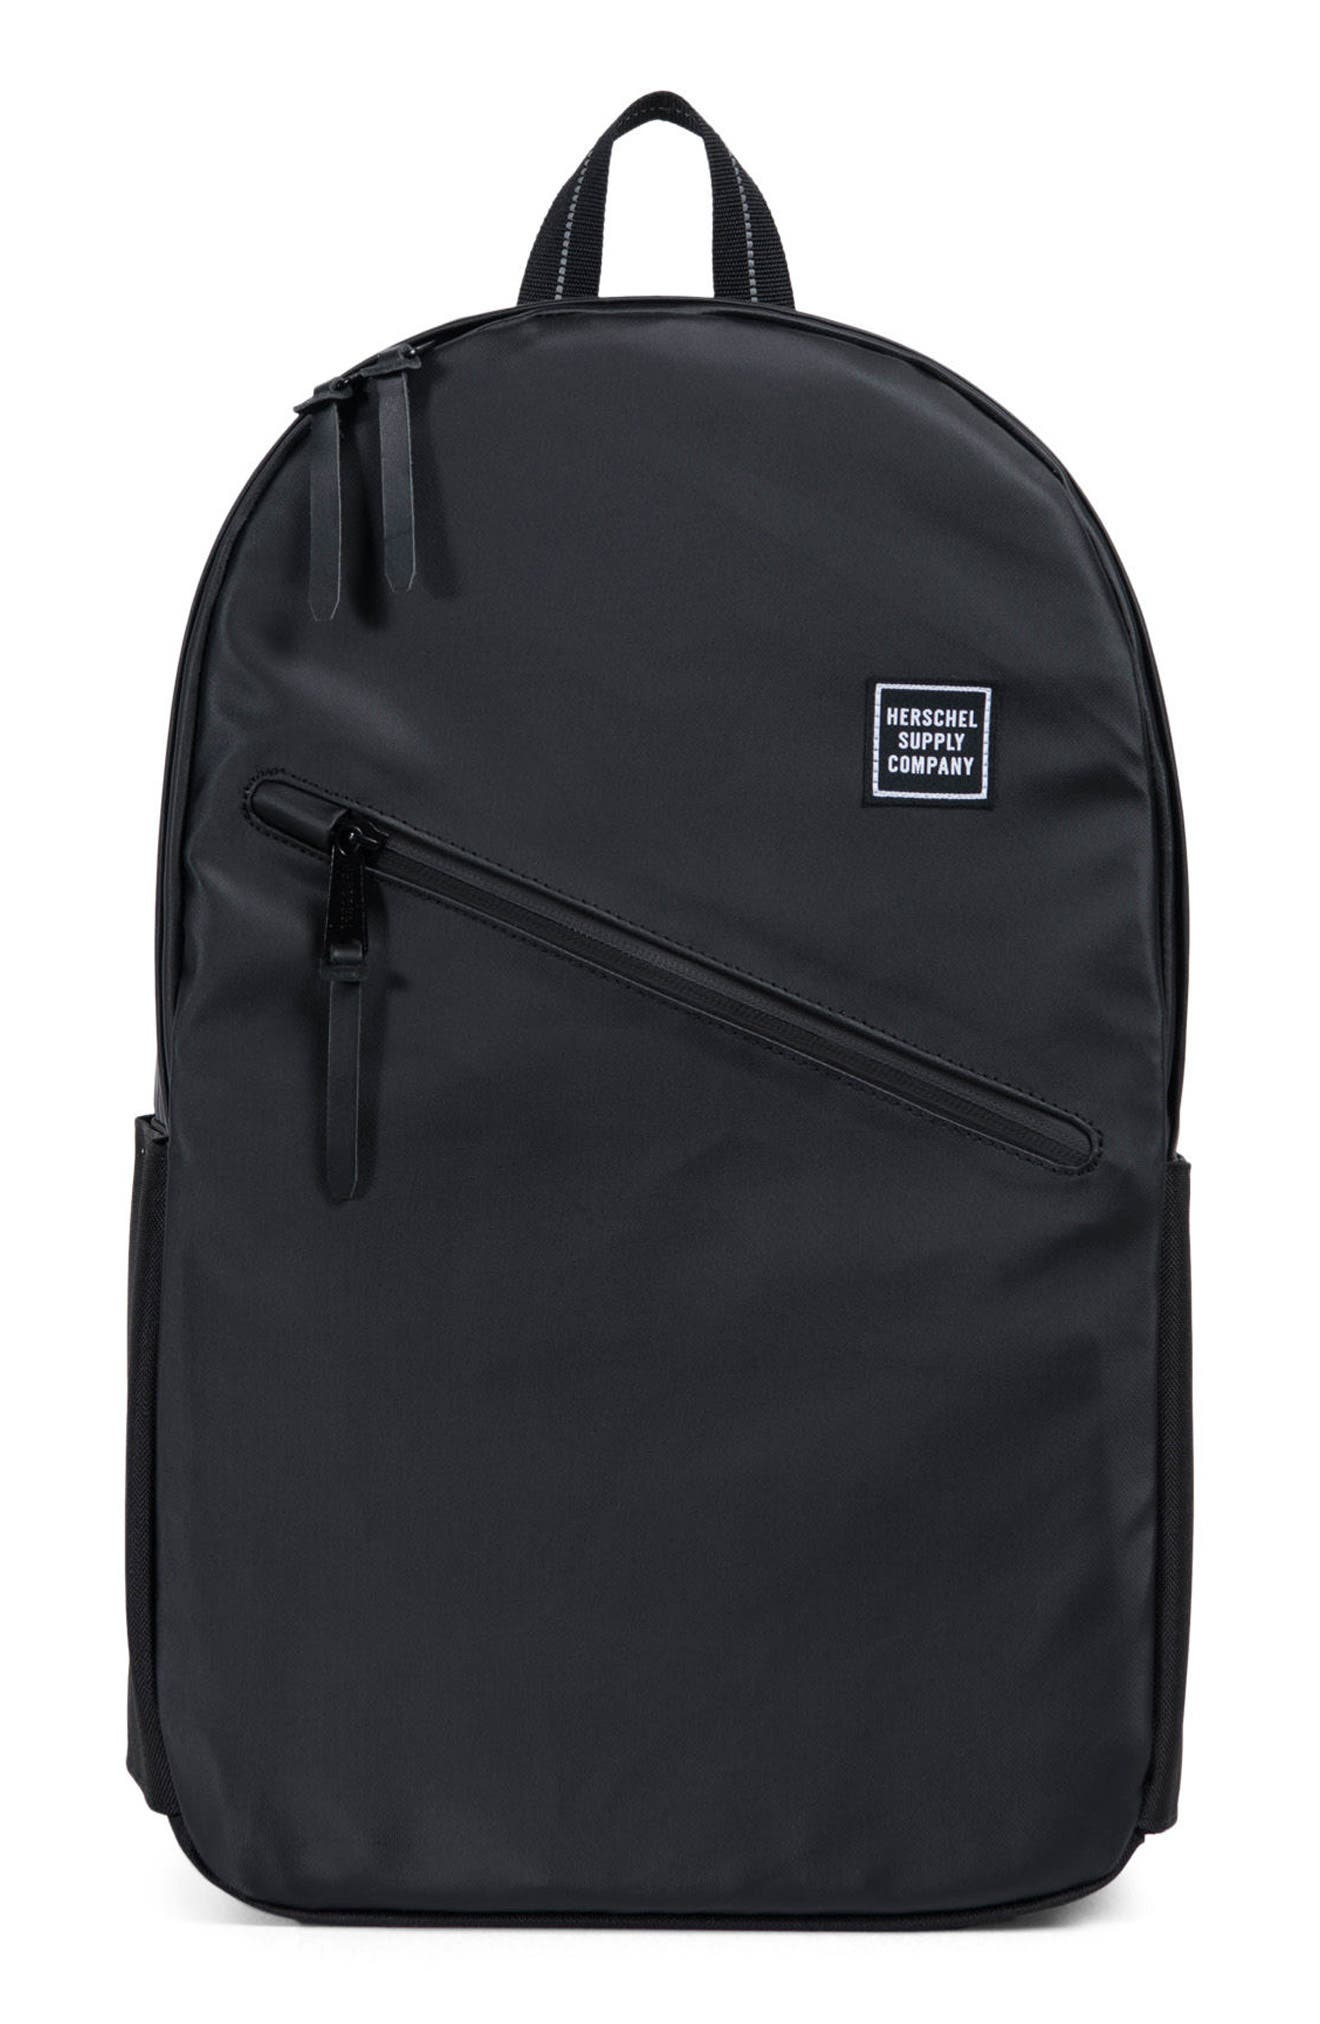 Parker Studio Collection Backpack,                             Main thumbnail 1, color,